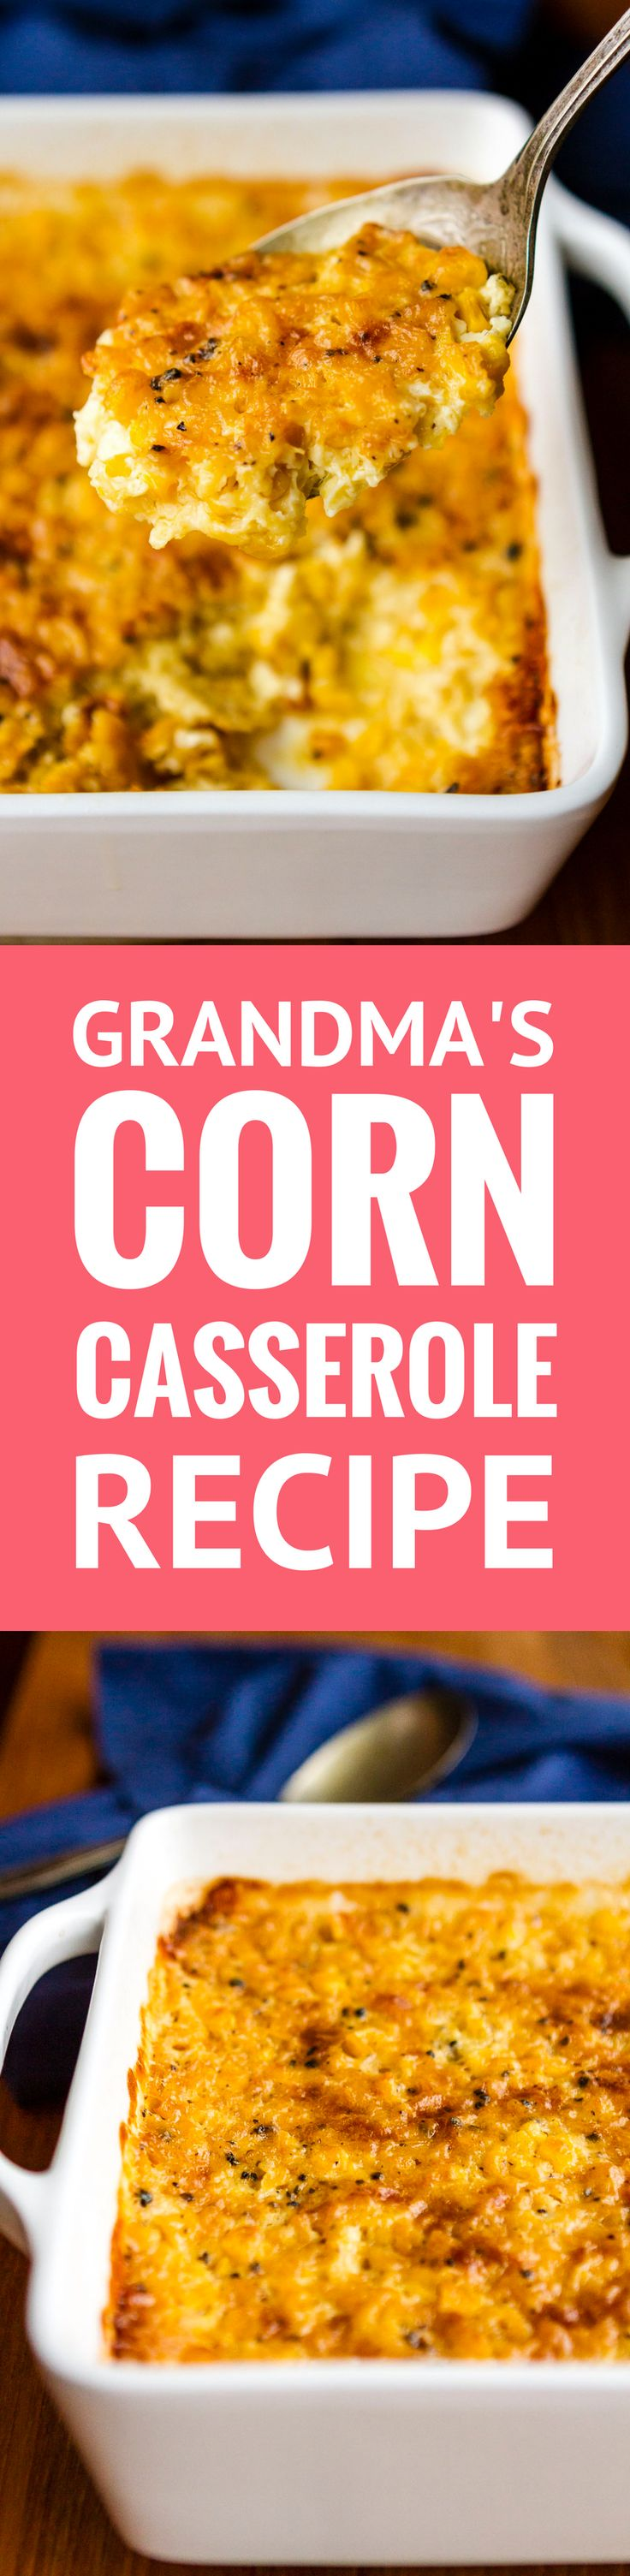 Corn Casserole Recipe -- Pinned over 250,000 times! This creamed corn casserole recipe is SO good you'll want to scrape the dish completely clean to get every last bit of caramelized goodness from the corners! It's on the menu for every family gathering I host… | baked creamed corn casserole | sweet corn casserole | corn casserole from scratch | easy corn casserole recipe | find the recipe on unsophisticook.com